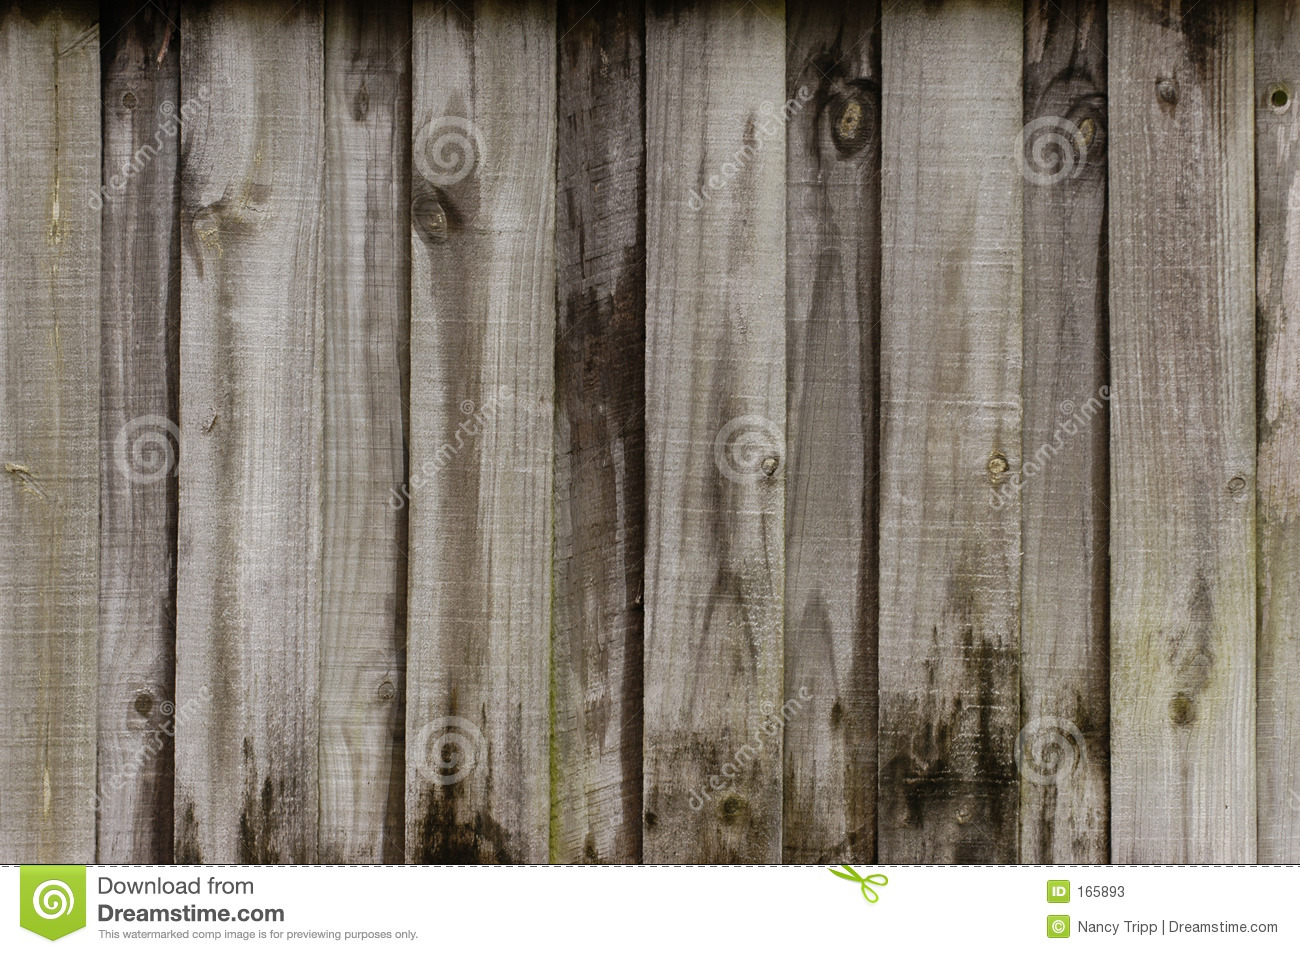 Rustic Background hd images - 515.9KB